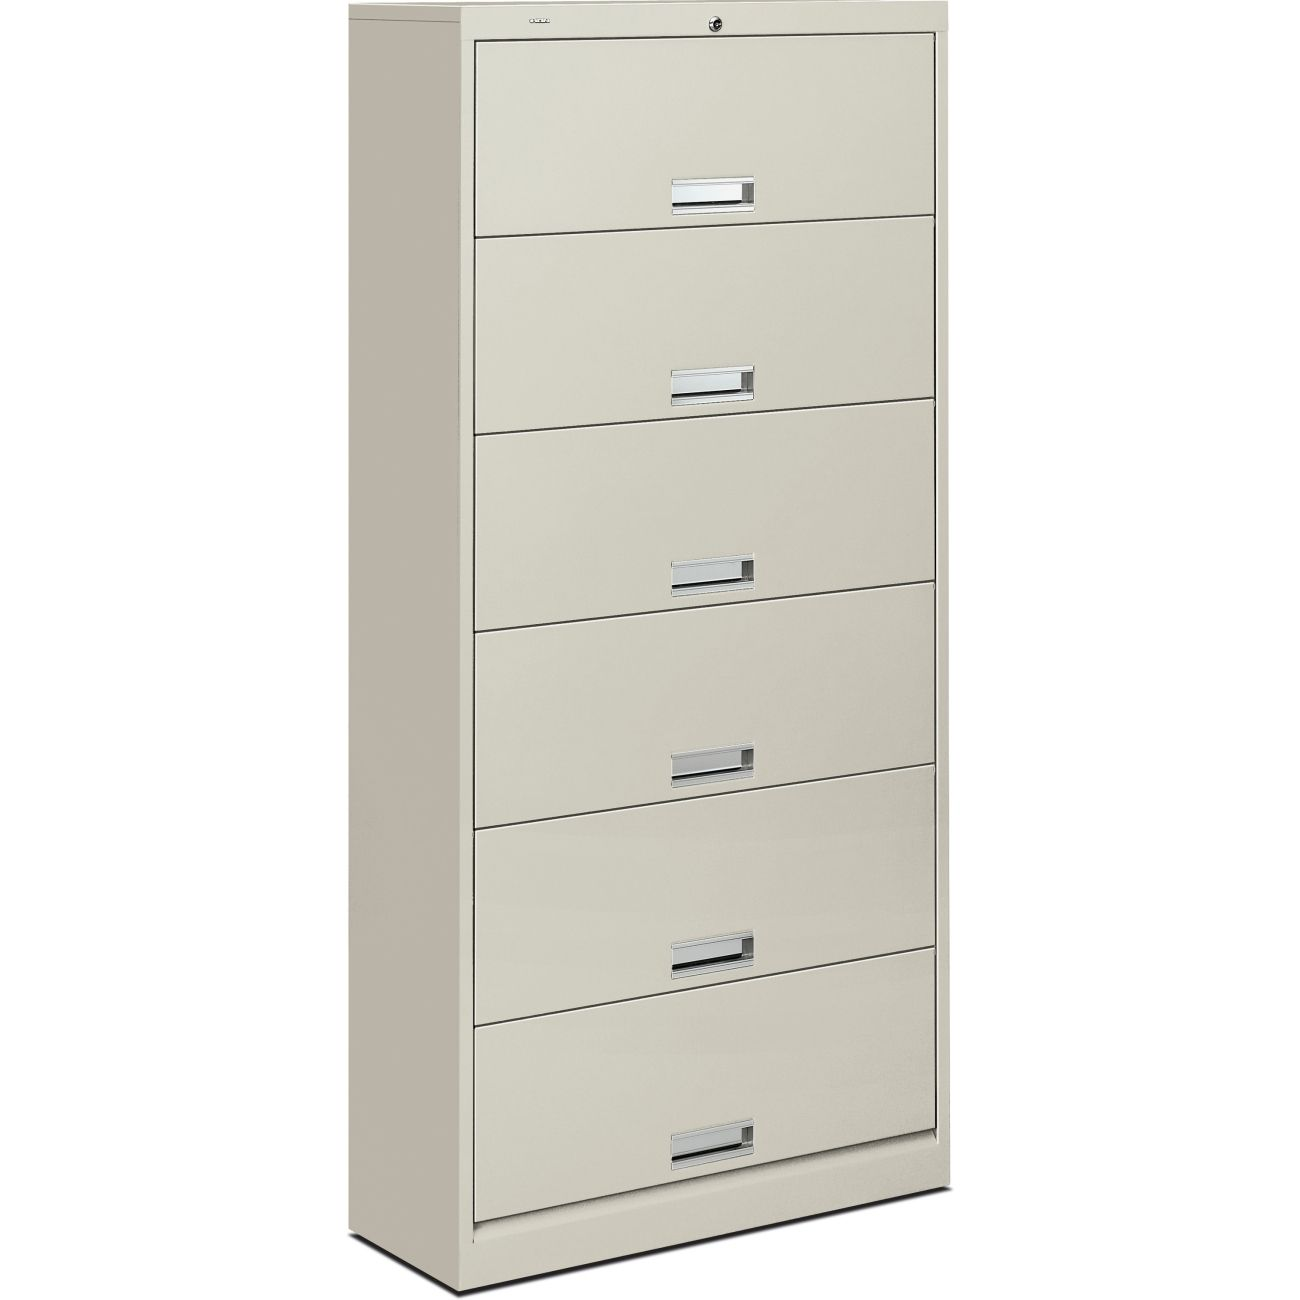 cheap steel with lockable oak storage furniture drawers four me accessories virco full near size cabinet legal vertical sale and big sentry plastic raw design for of file cherry security box small cabinets filing safe metal drawer home lock wood wooden large